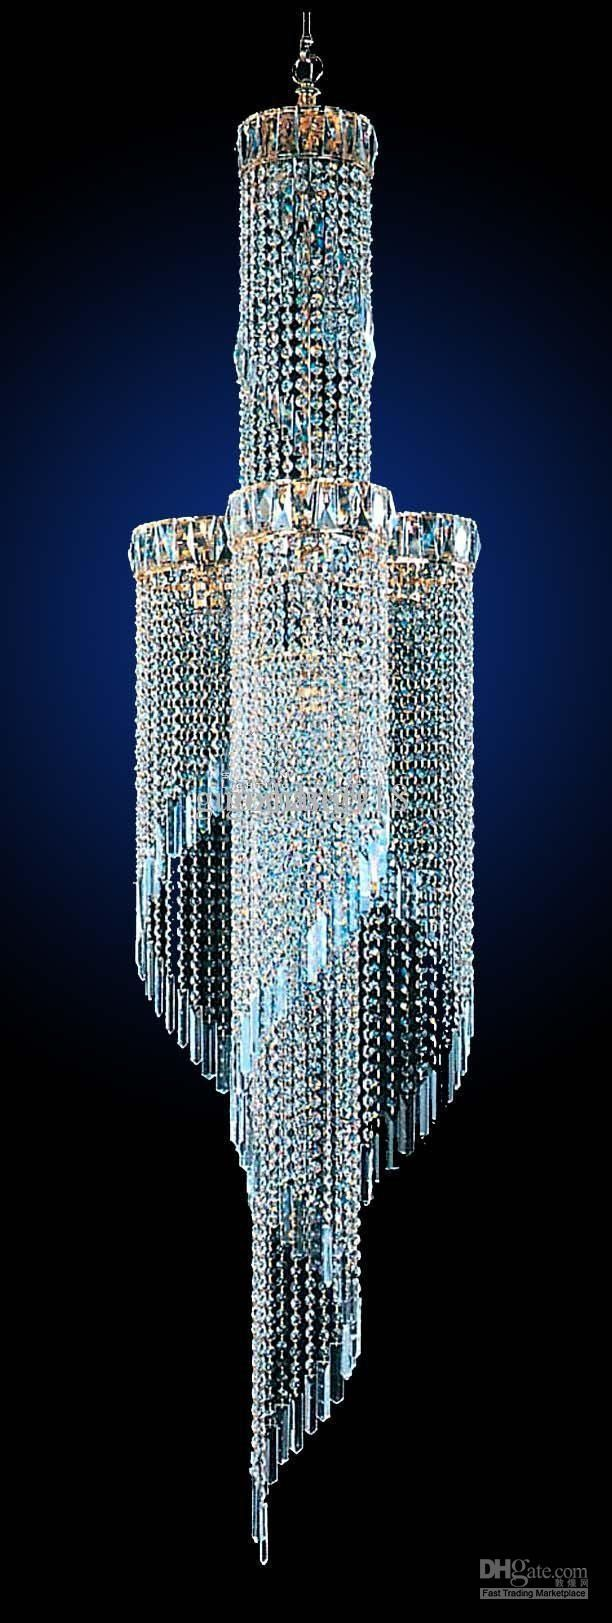 507 best crystal images on pinterest crystals cut glass and dish sets rp crystal chandeliers arubaitofo Images